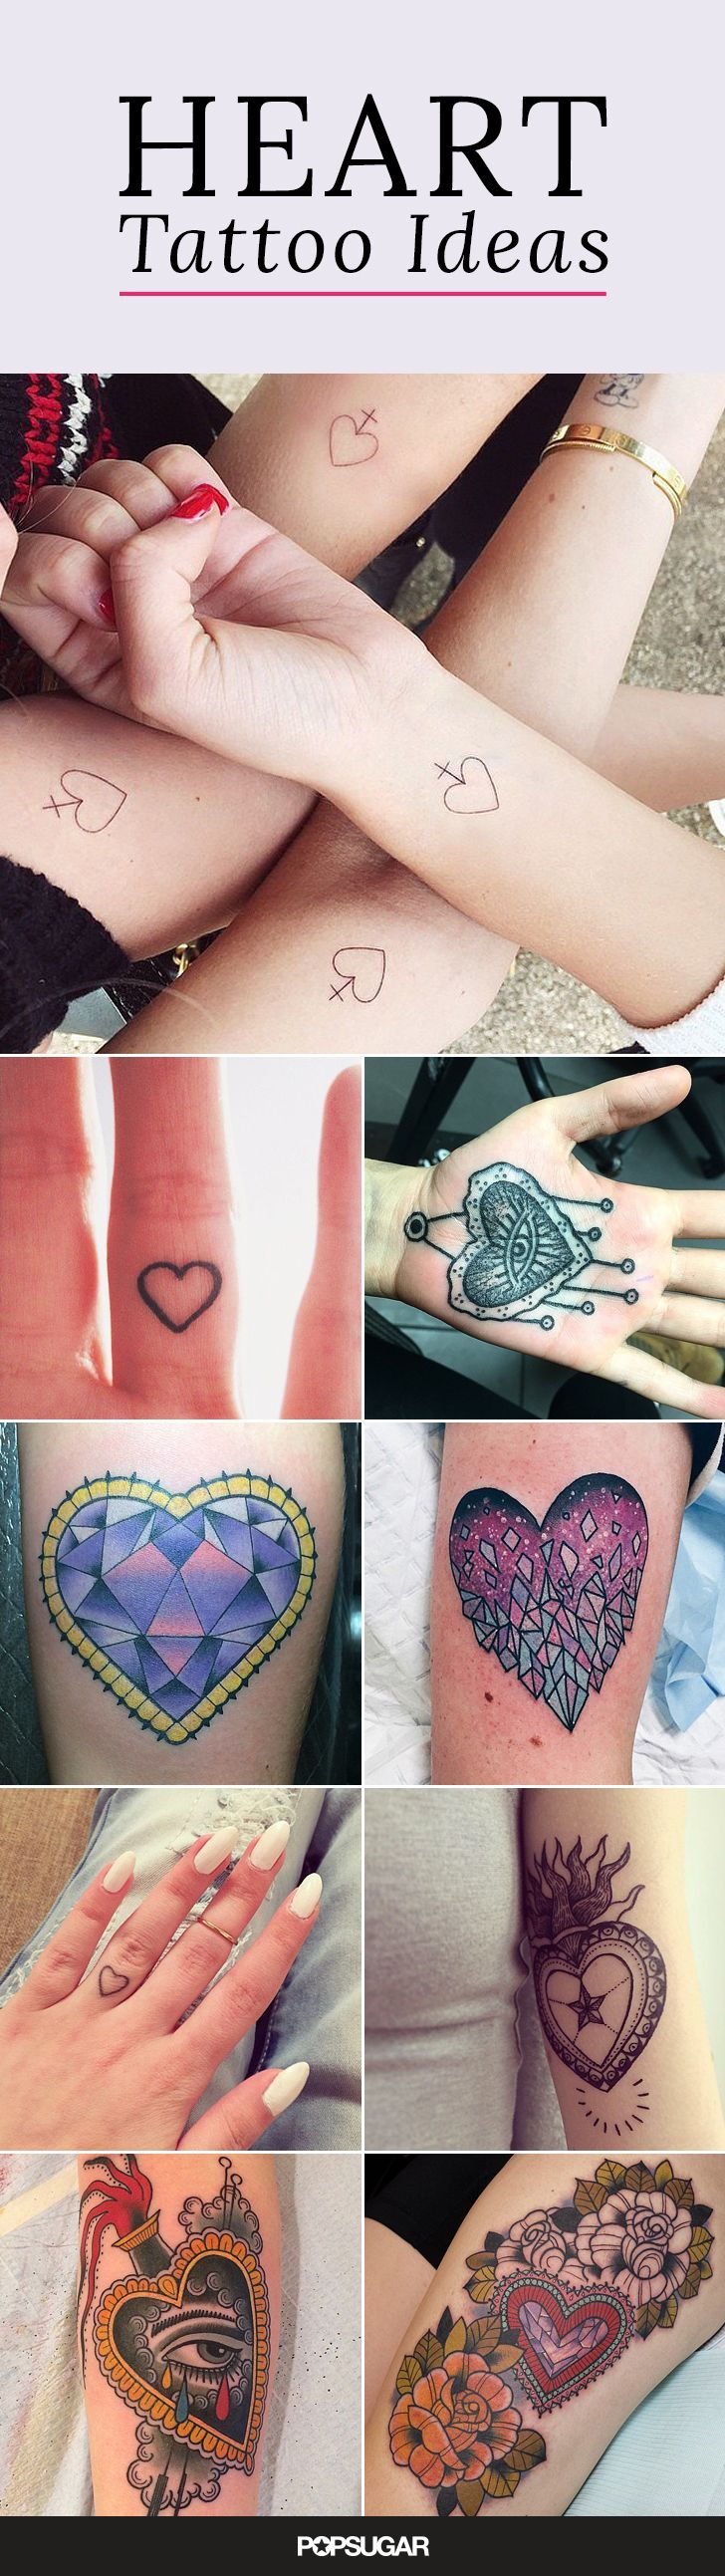 We're loving the ladies and gentlemen who have taken the leap, made the commitment, and gotten marked with some permanent heart-shaped ink, big and small. If hearts aren't usually your thing, trust us — there are. , colorful, and classic renditions of the heart, there's some great inspiration for that, too! Check out these stunning tattoos!